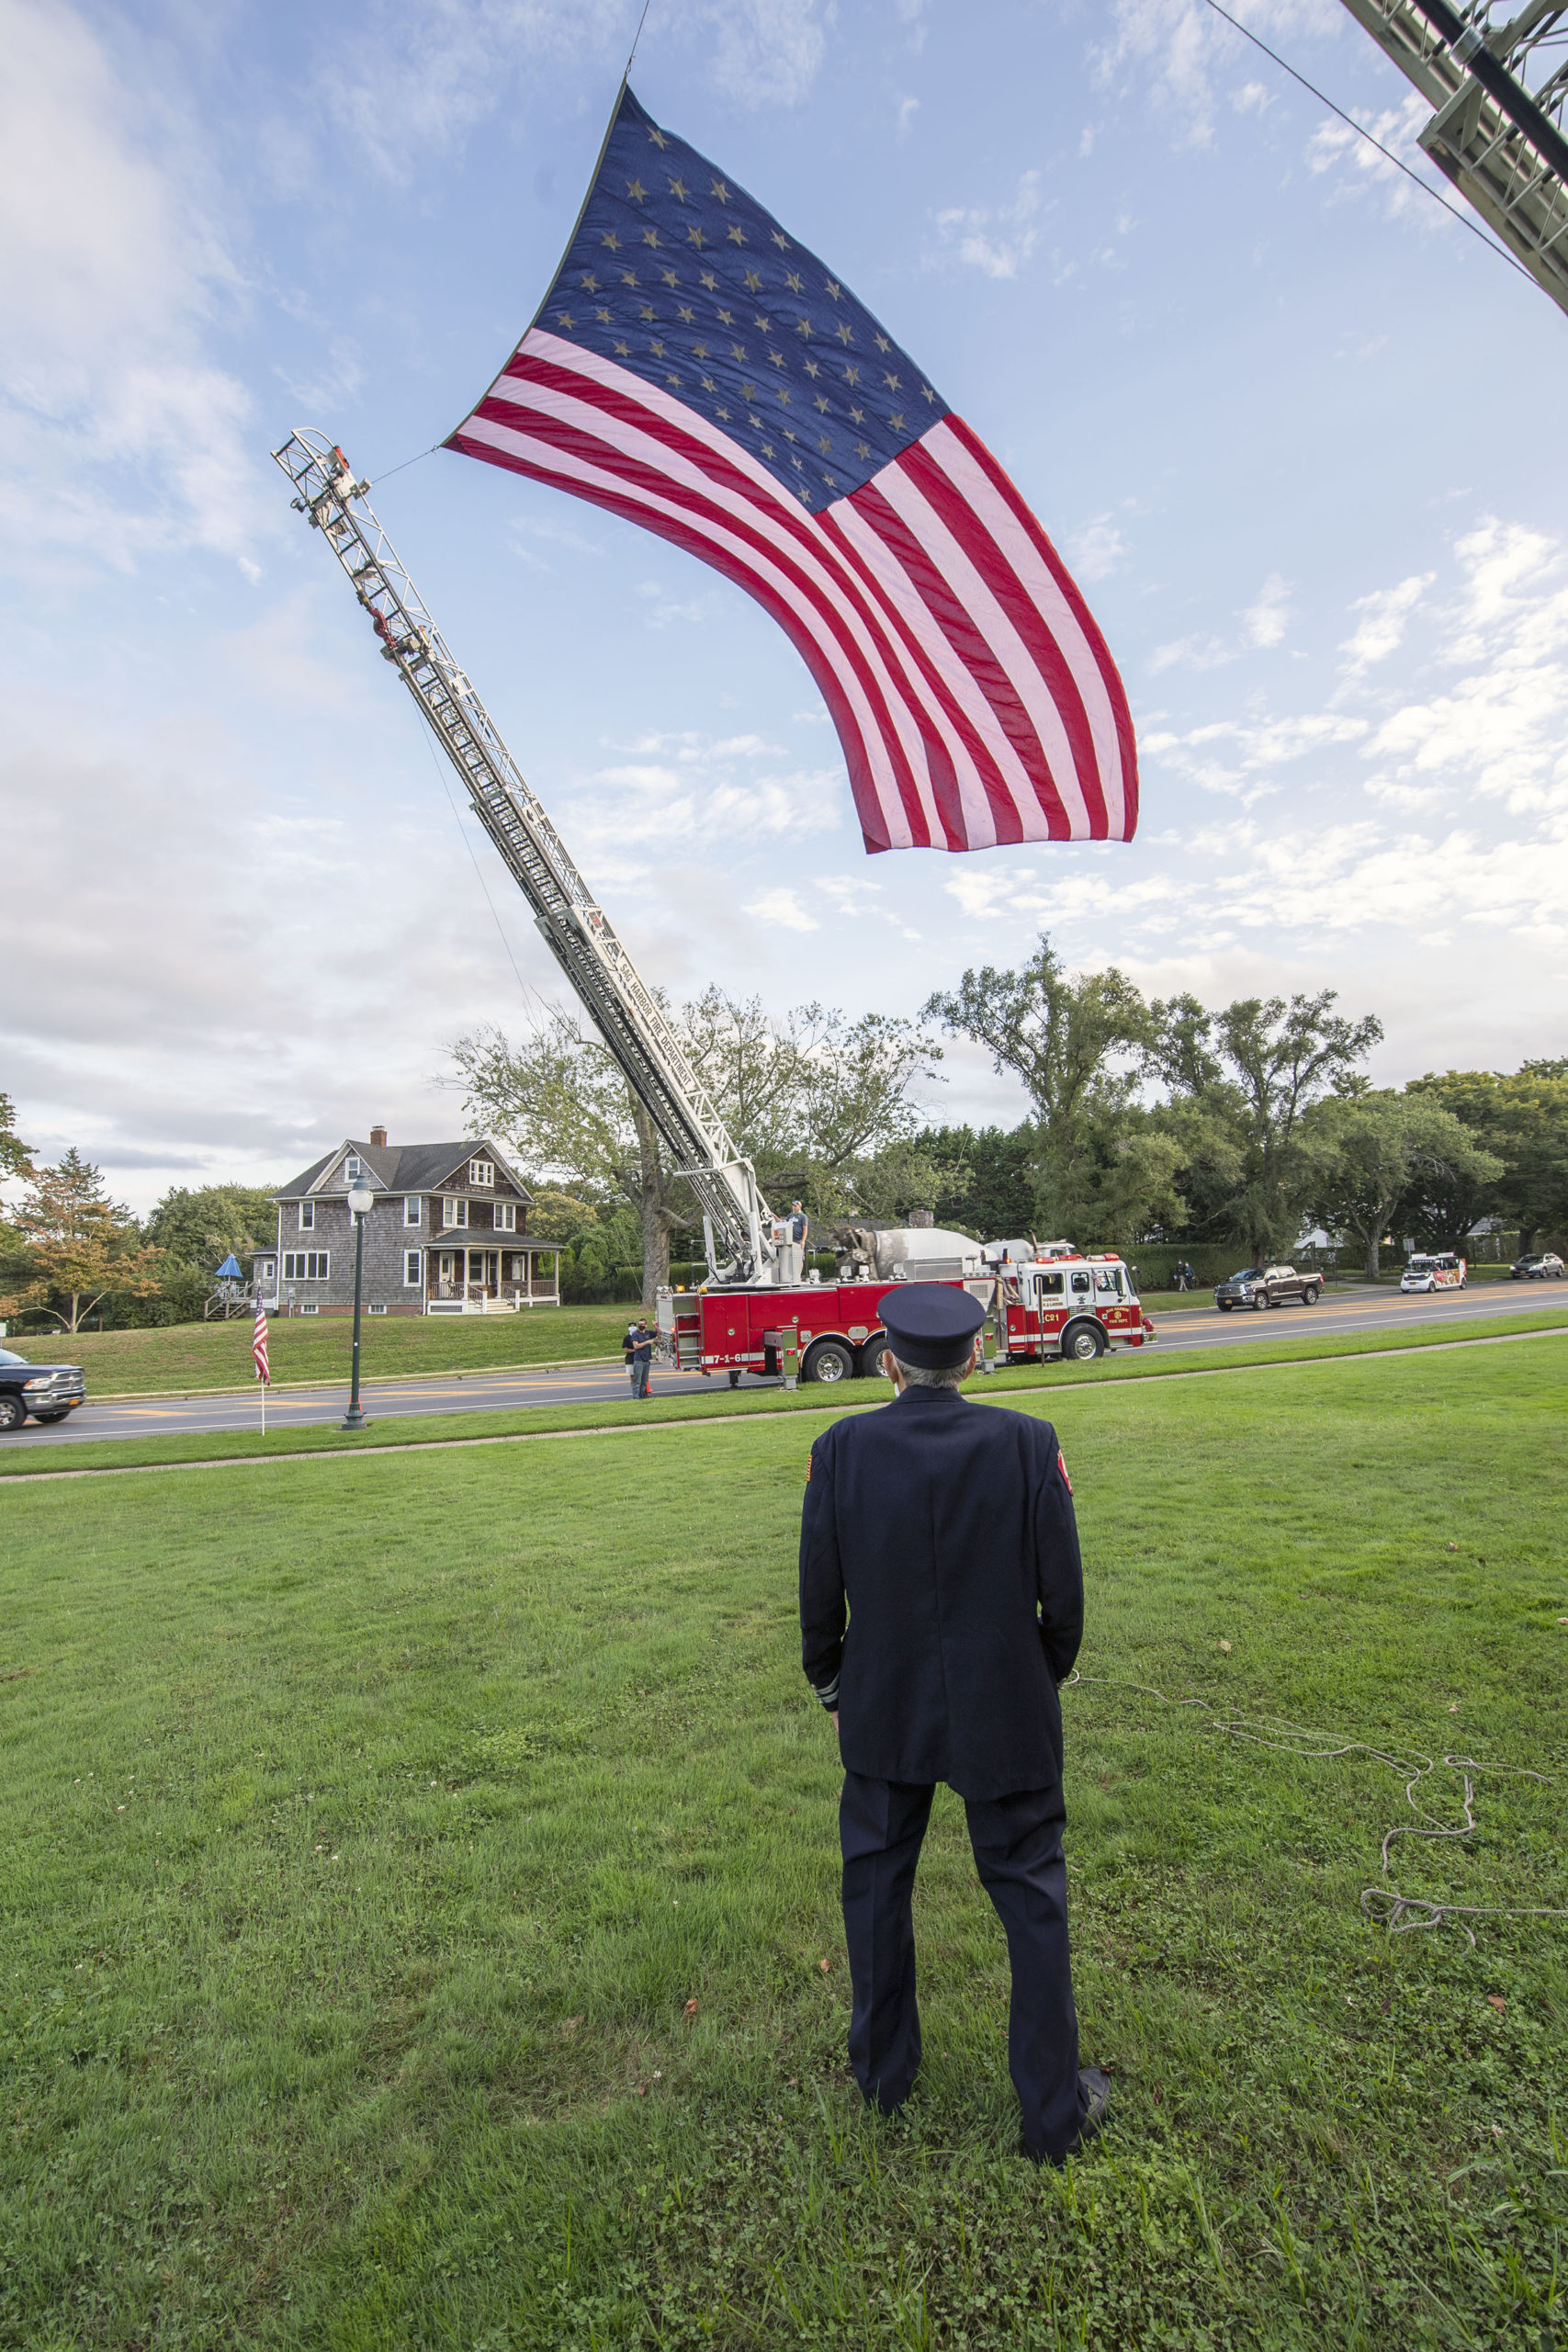 East Hampton Fire Department 50+ year member Joseph DeCristofaro looks up at a large american flag hoisted by EHFD and Sag Harbor FD ladder companies as members of the East End Fire, EMS and Police Departments held a memorial service on the village green in East Hampton commemorating the 19th anniversary of the September 11 attacks.